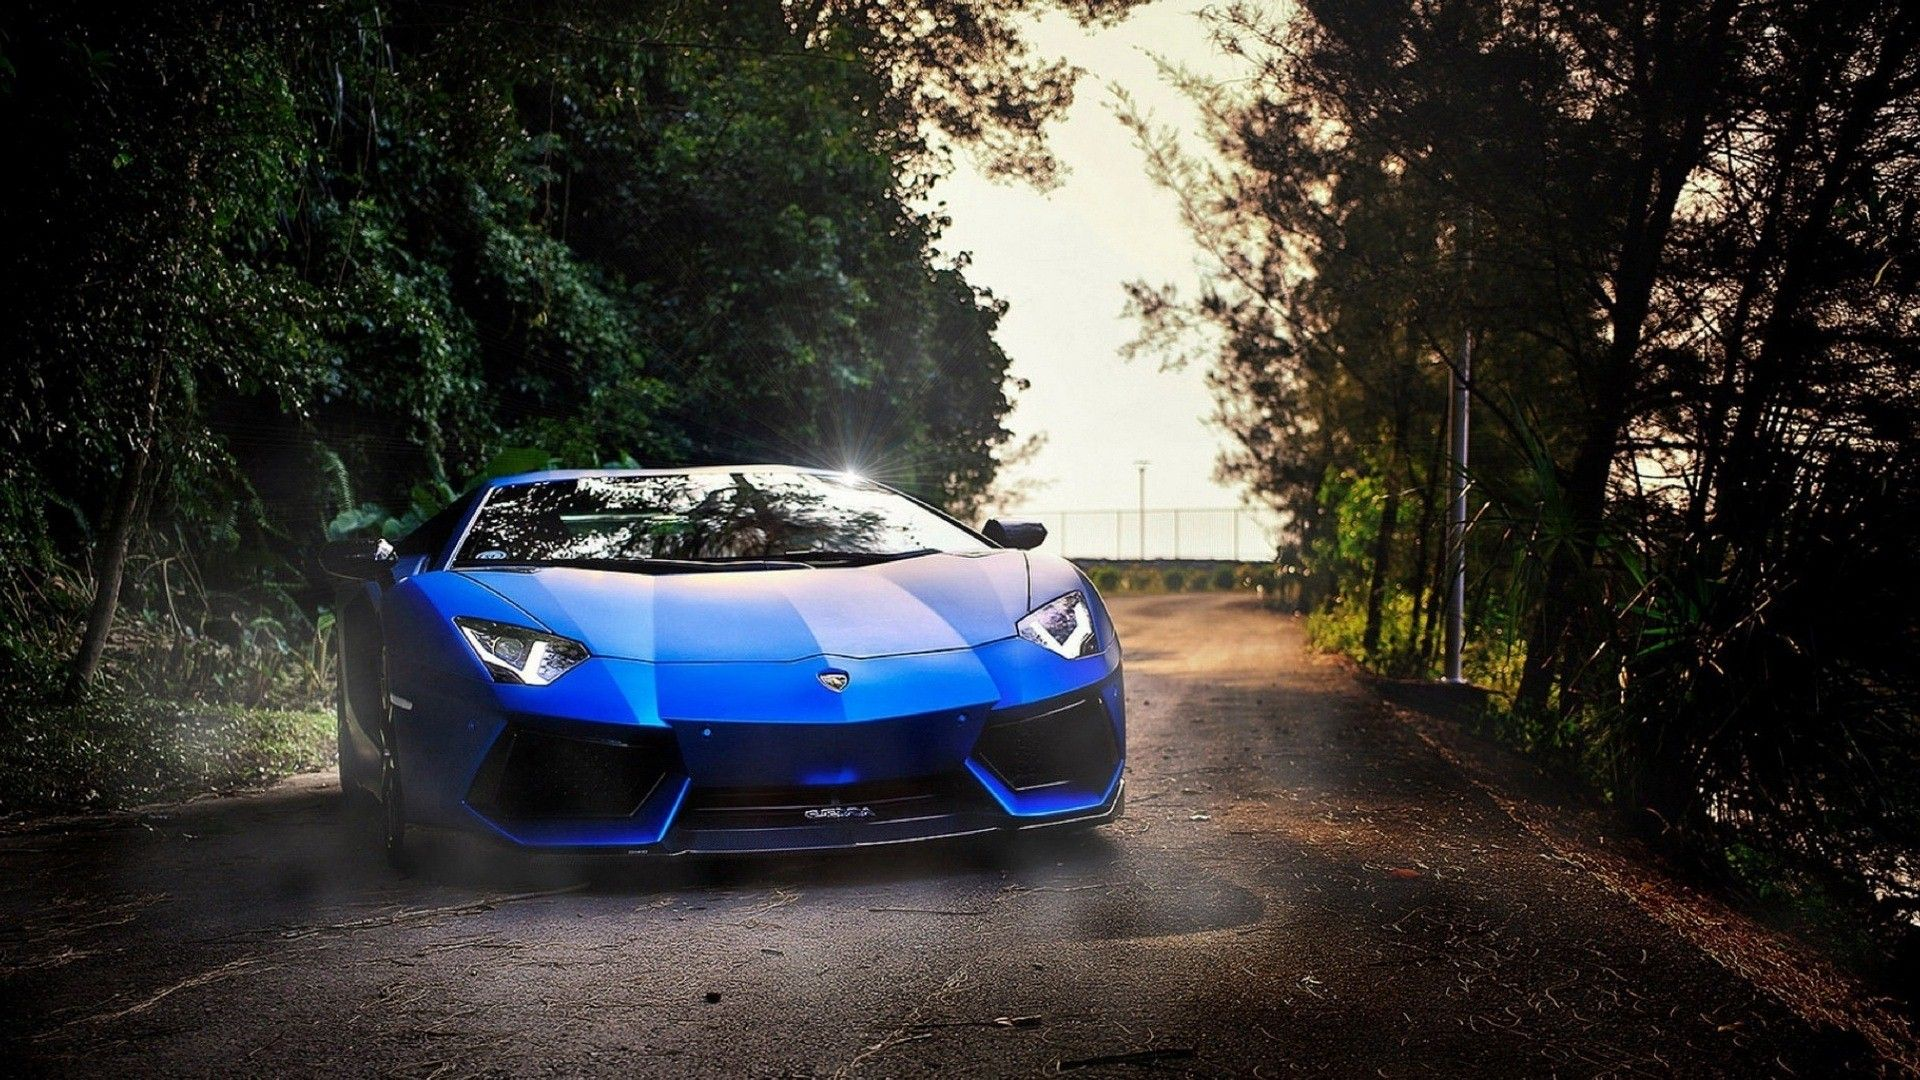 Blue Lamborghini Wallpaper High Quality